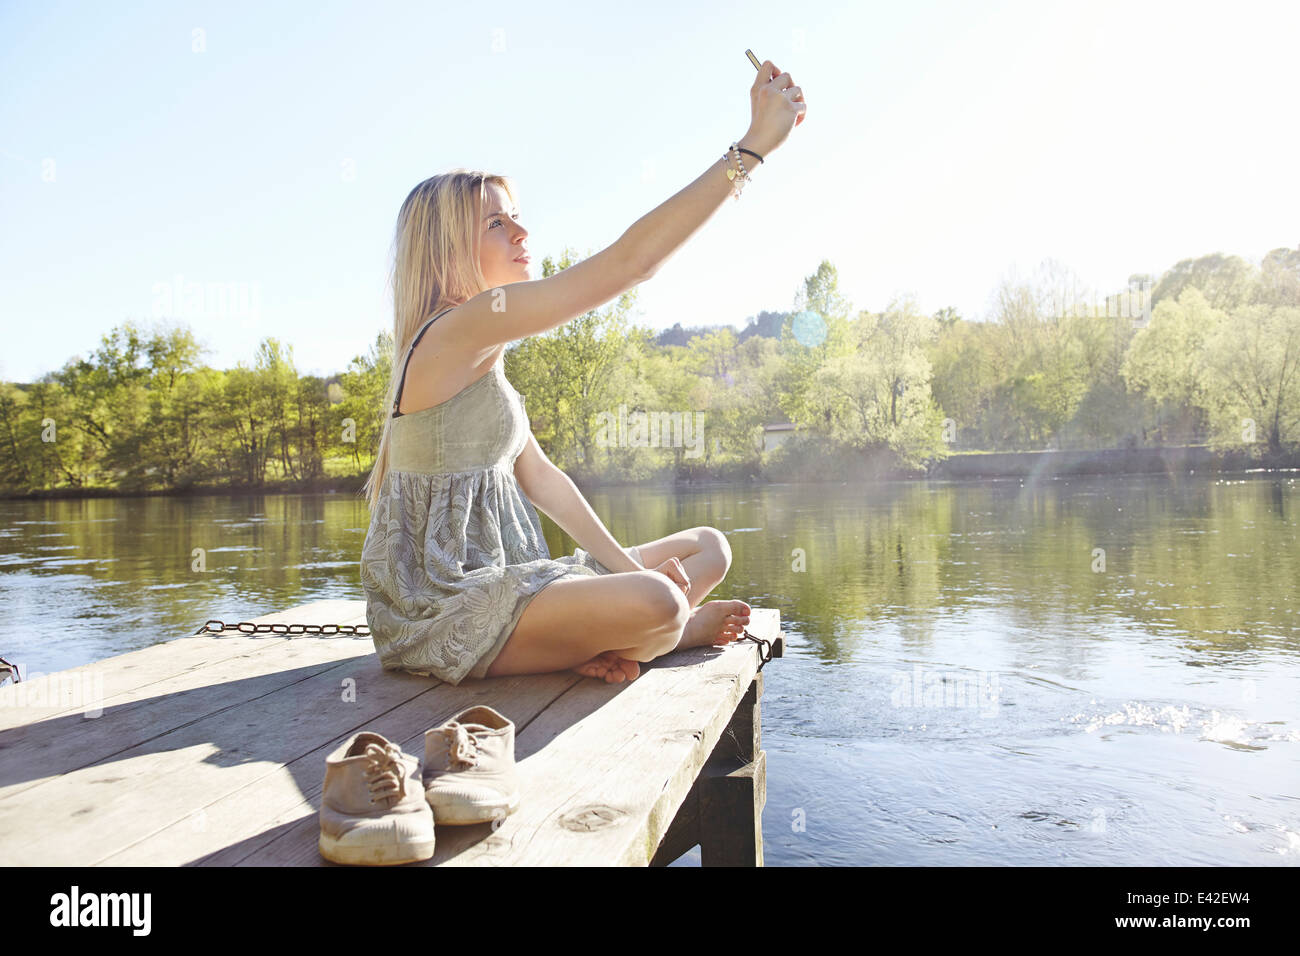 Young woman sitting on jetty photographing herself - Stock Image